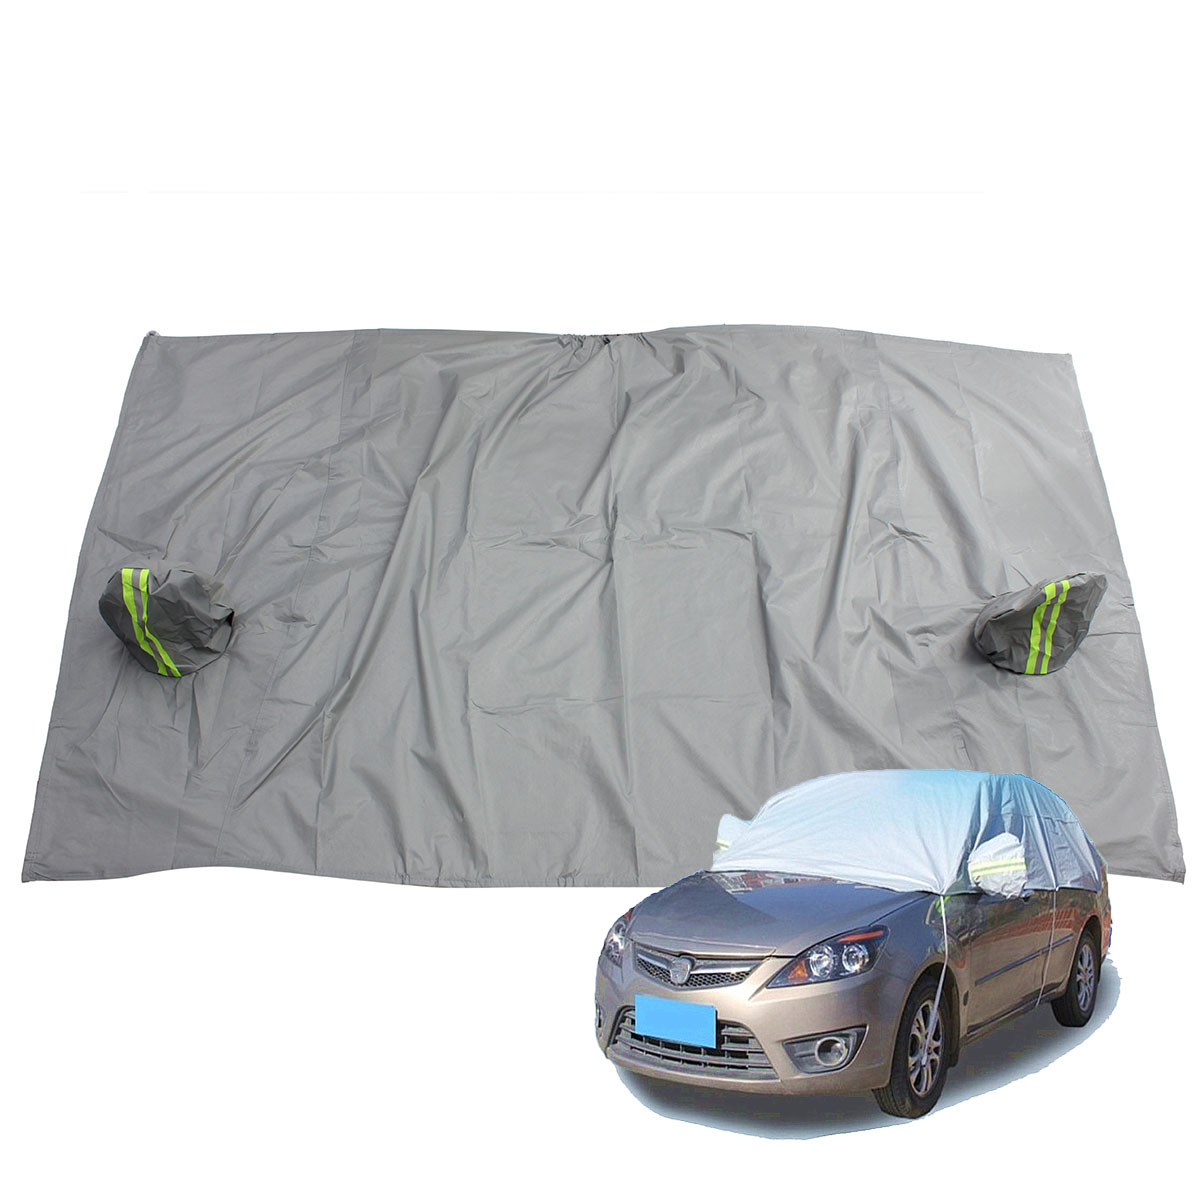 Universal Car Half Covers Styling Waterproof Sunshade Snow Resistant Breathable Anti-UV Protection Outdoor Indoor Shield